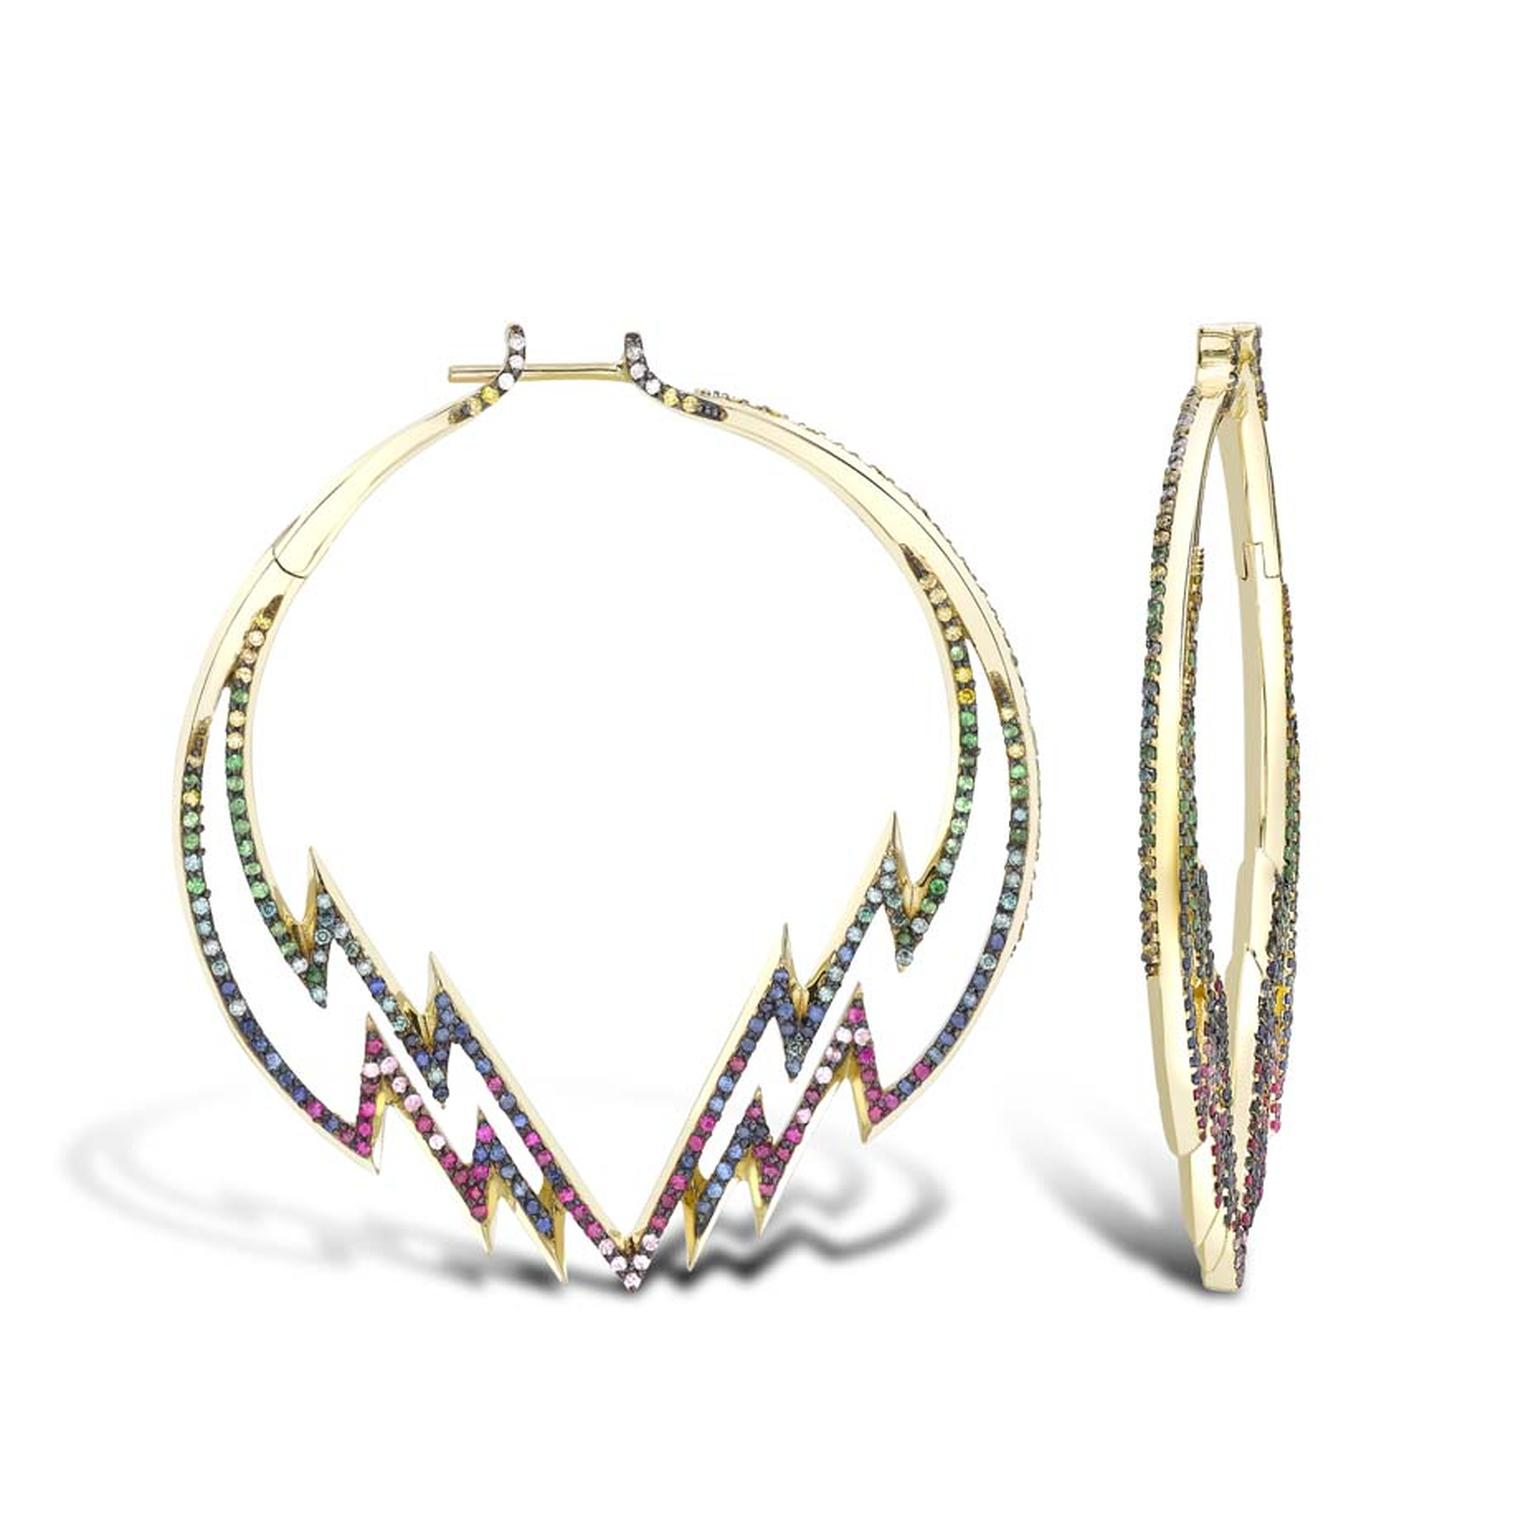 Venyx Electra Hoop earrings with coloured gemstones, from the new Theiya collection.